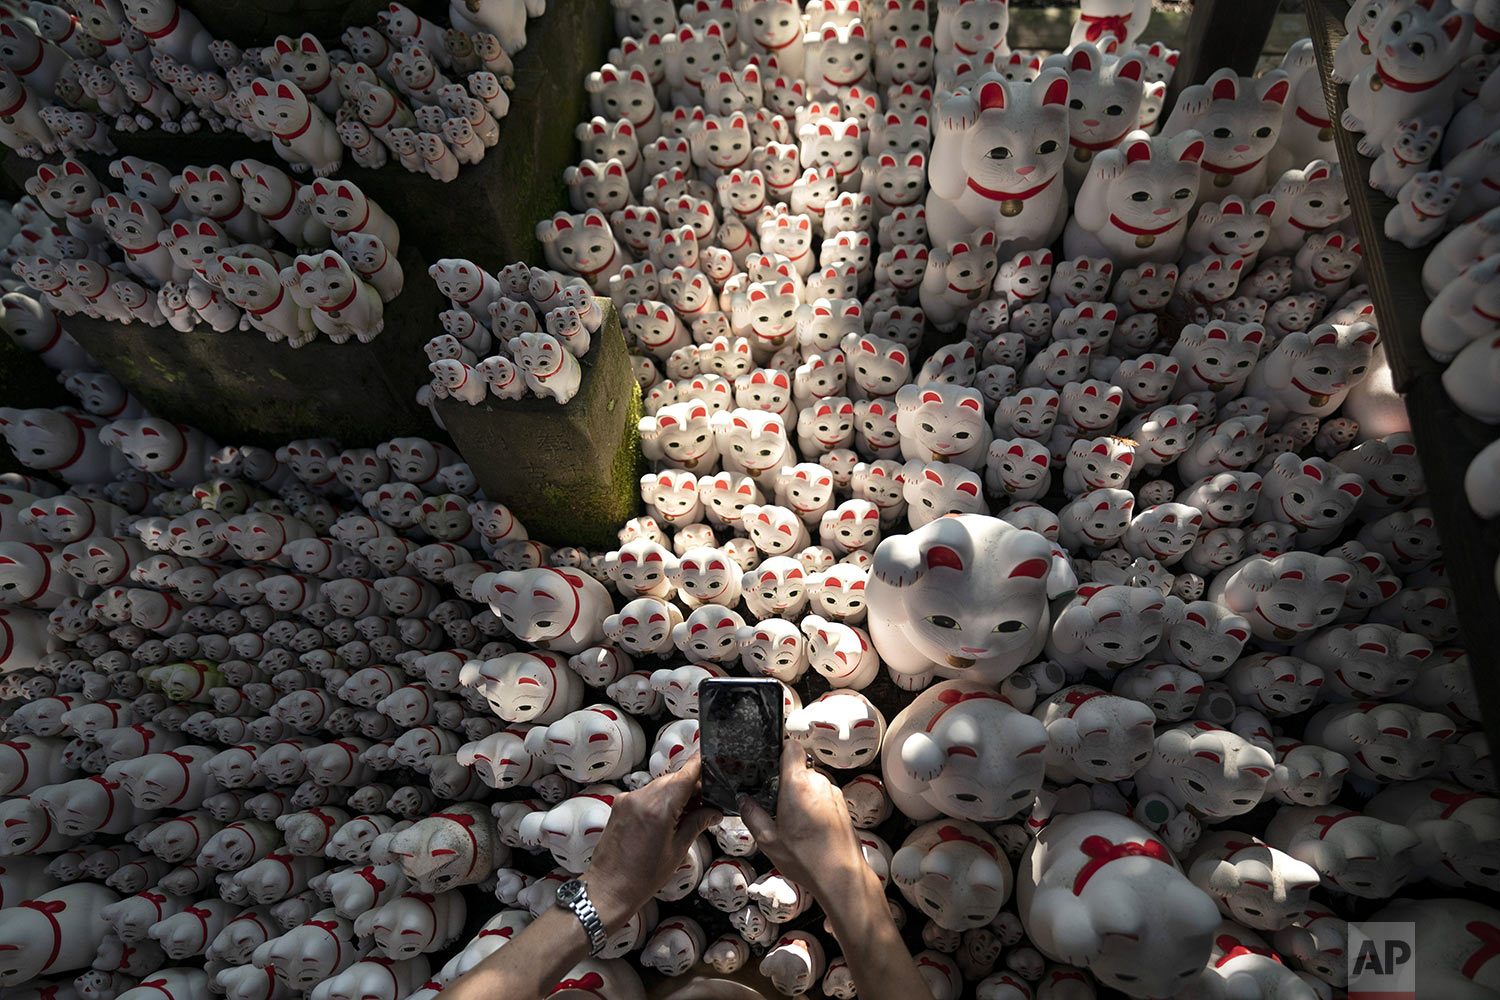 A visitor takes pictures of beckoning cat figurines at Gotokuji Temple in Tokyo, Tuesday, June 25, 2019. (AP Photo/Jae C. Hong)